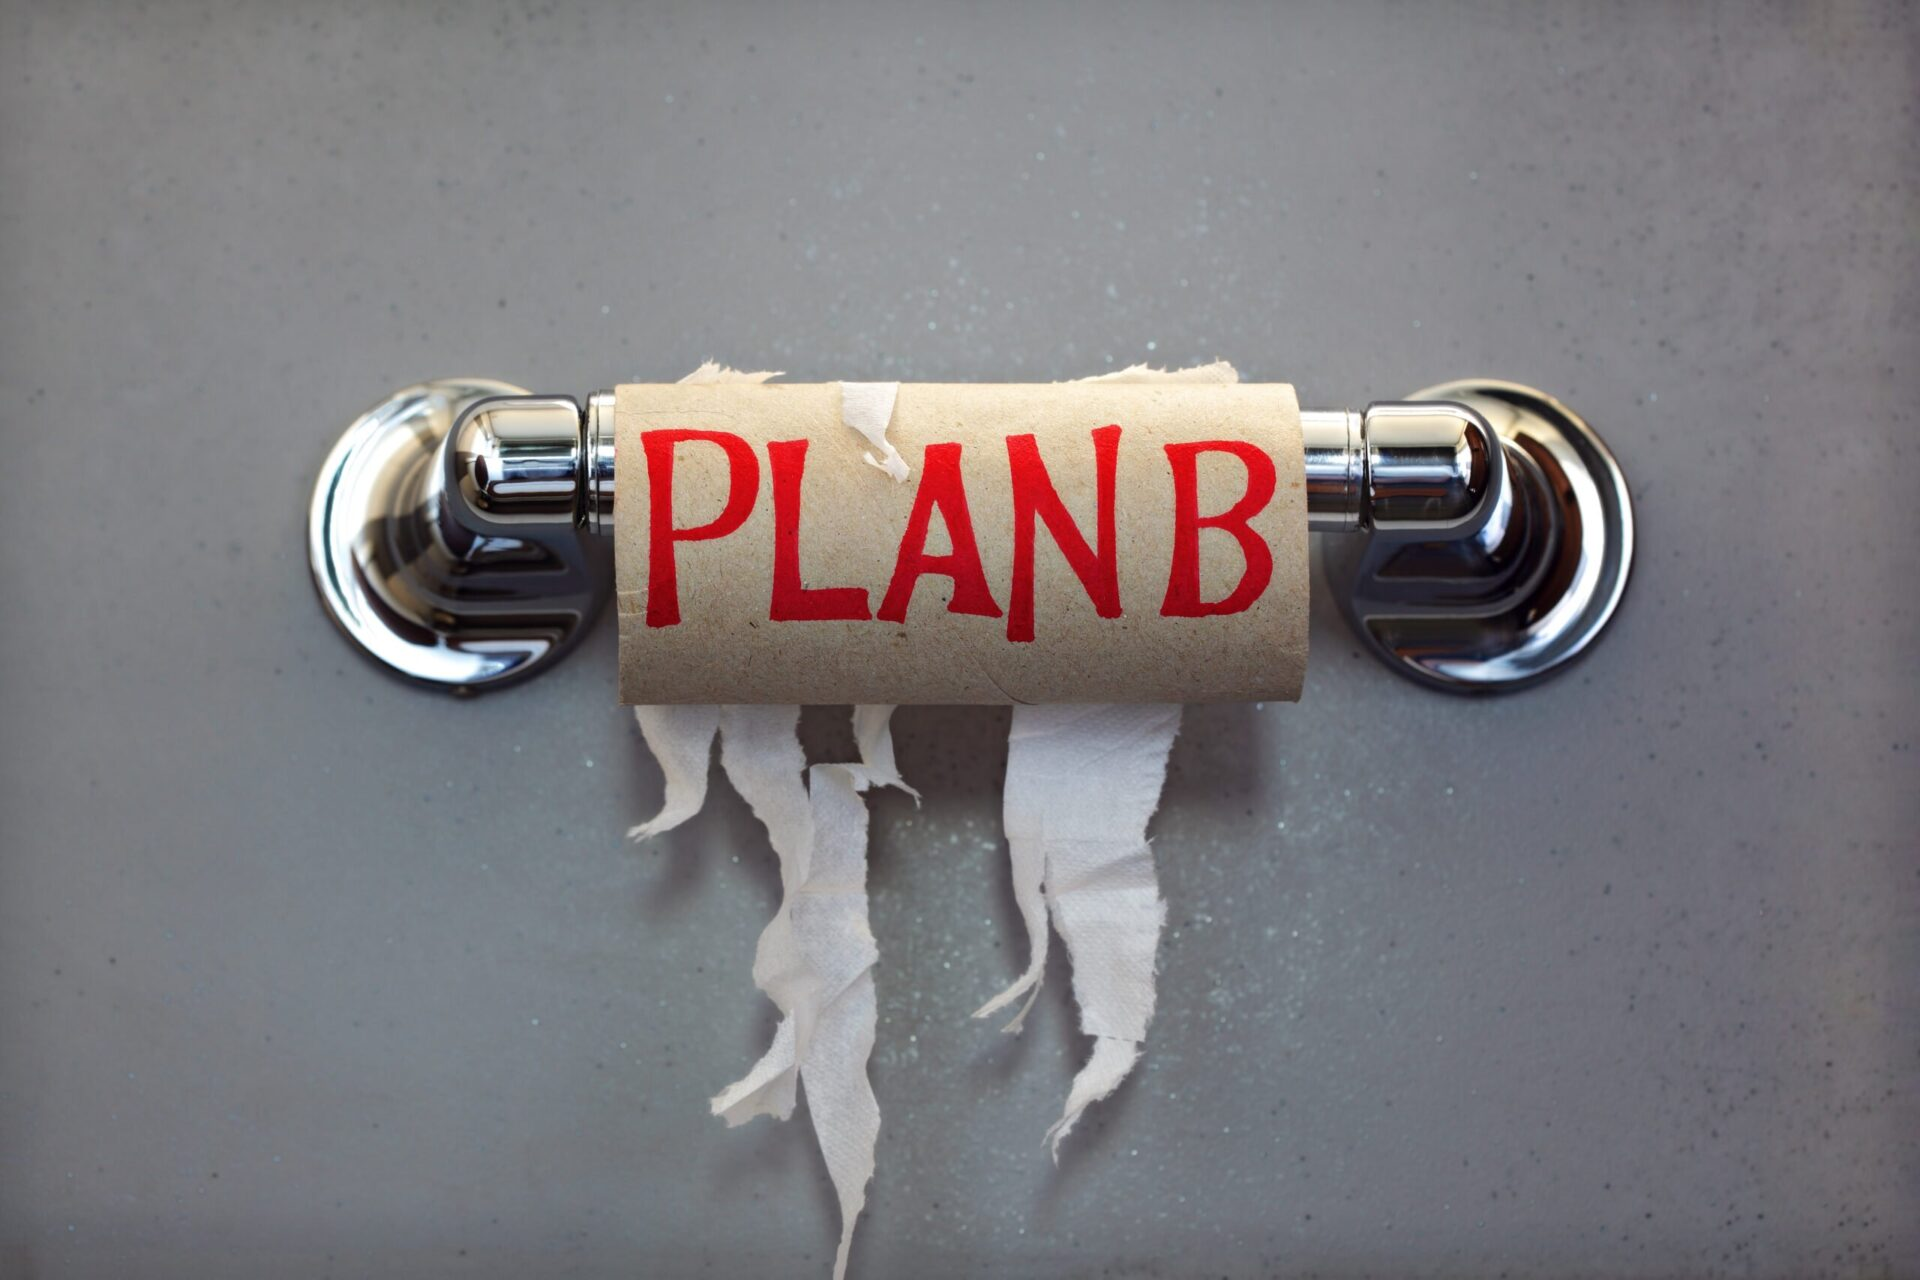 Plan B for less toilet paper